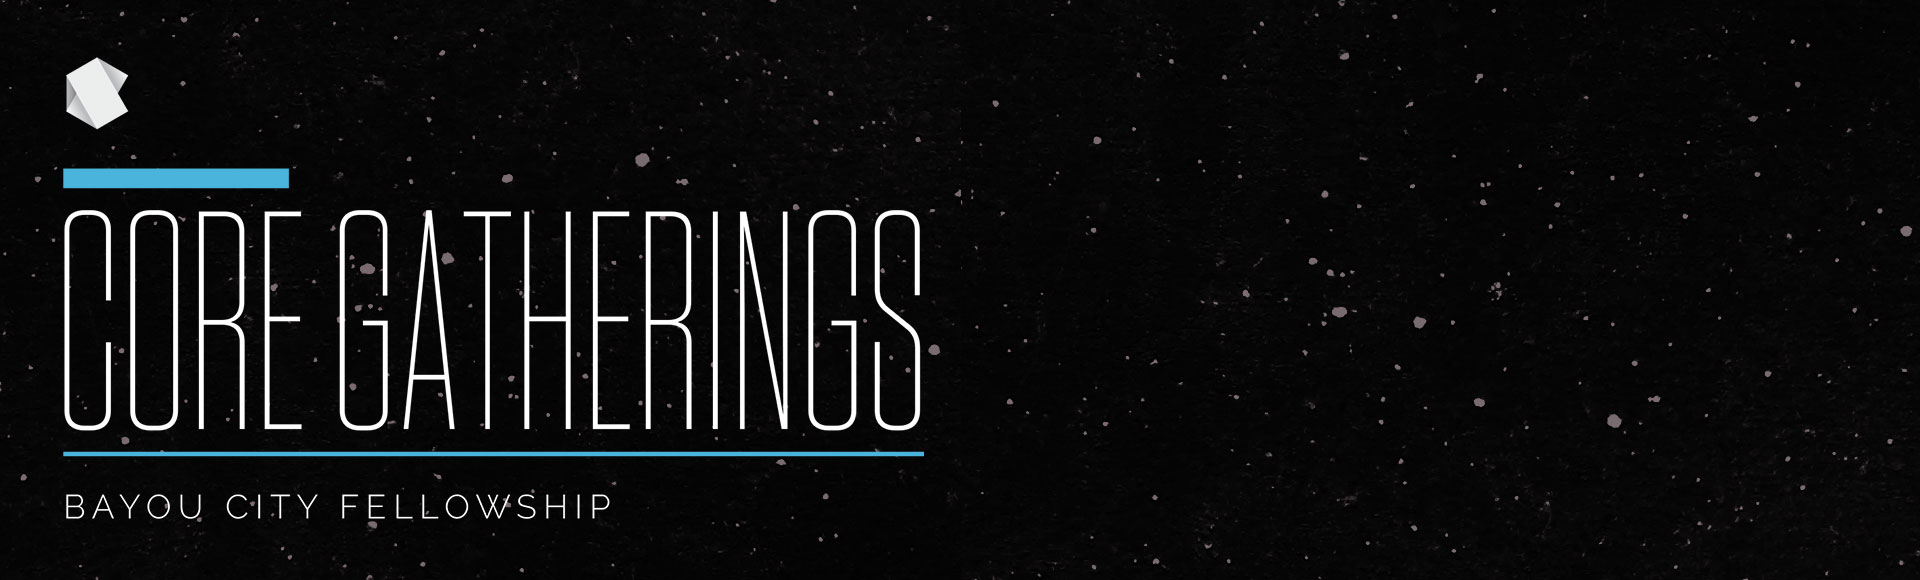 Core-Gathering-Page-Banner-1920x580